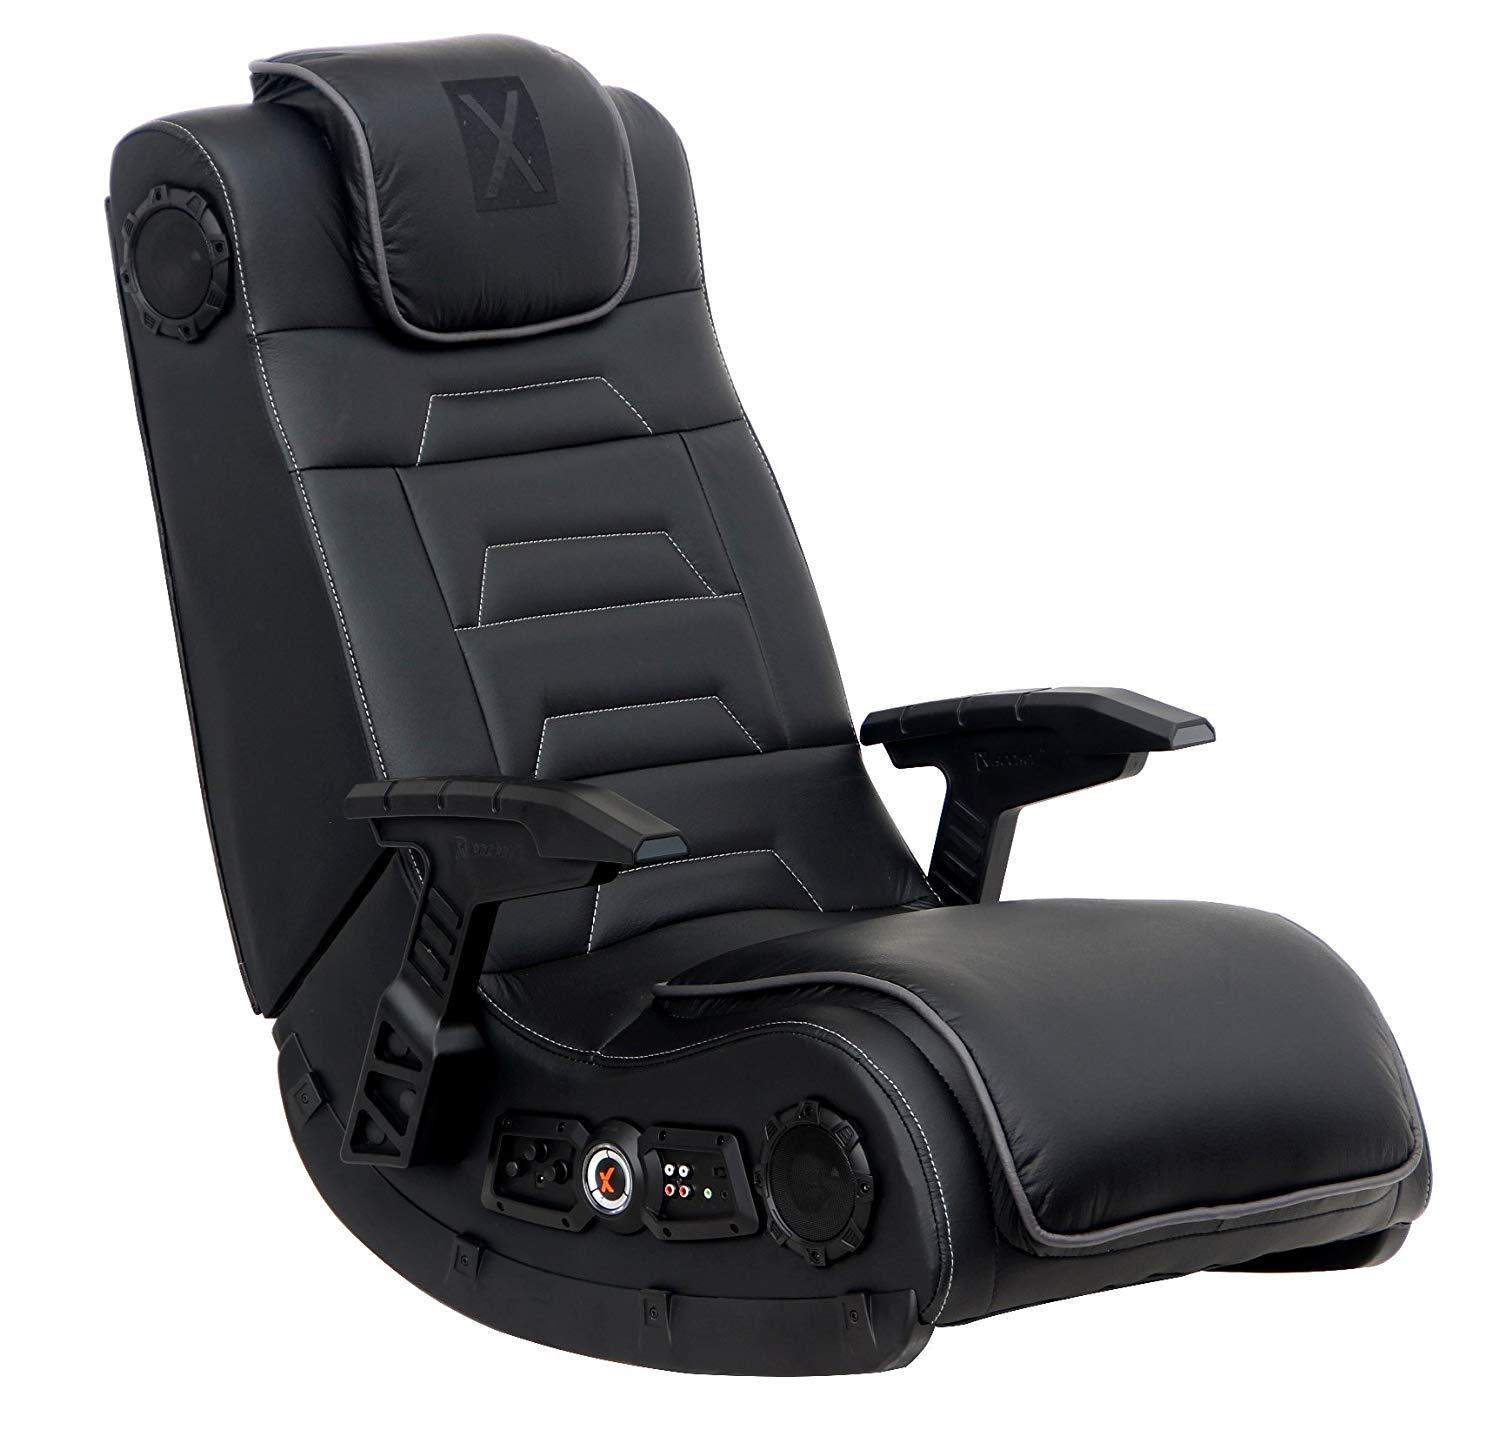 Marvelous Best Cheap Gaming Chairs 2019 Updated Read Before You Buy Forskolin Free Trial Chair Design Images Forskolin Free Trialorg